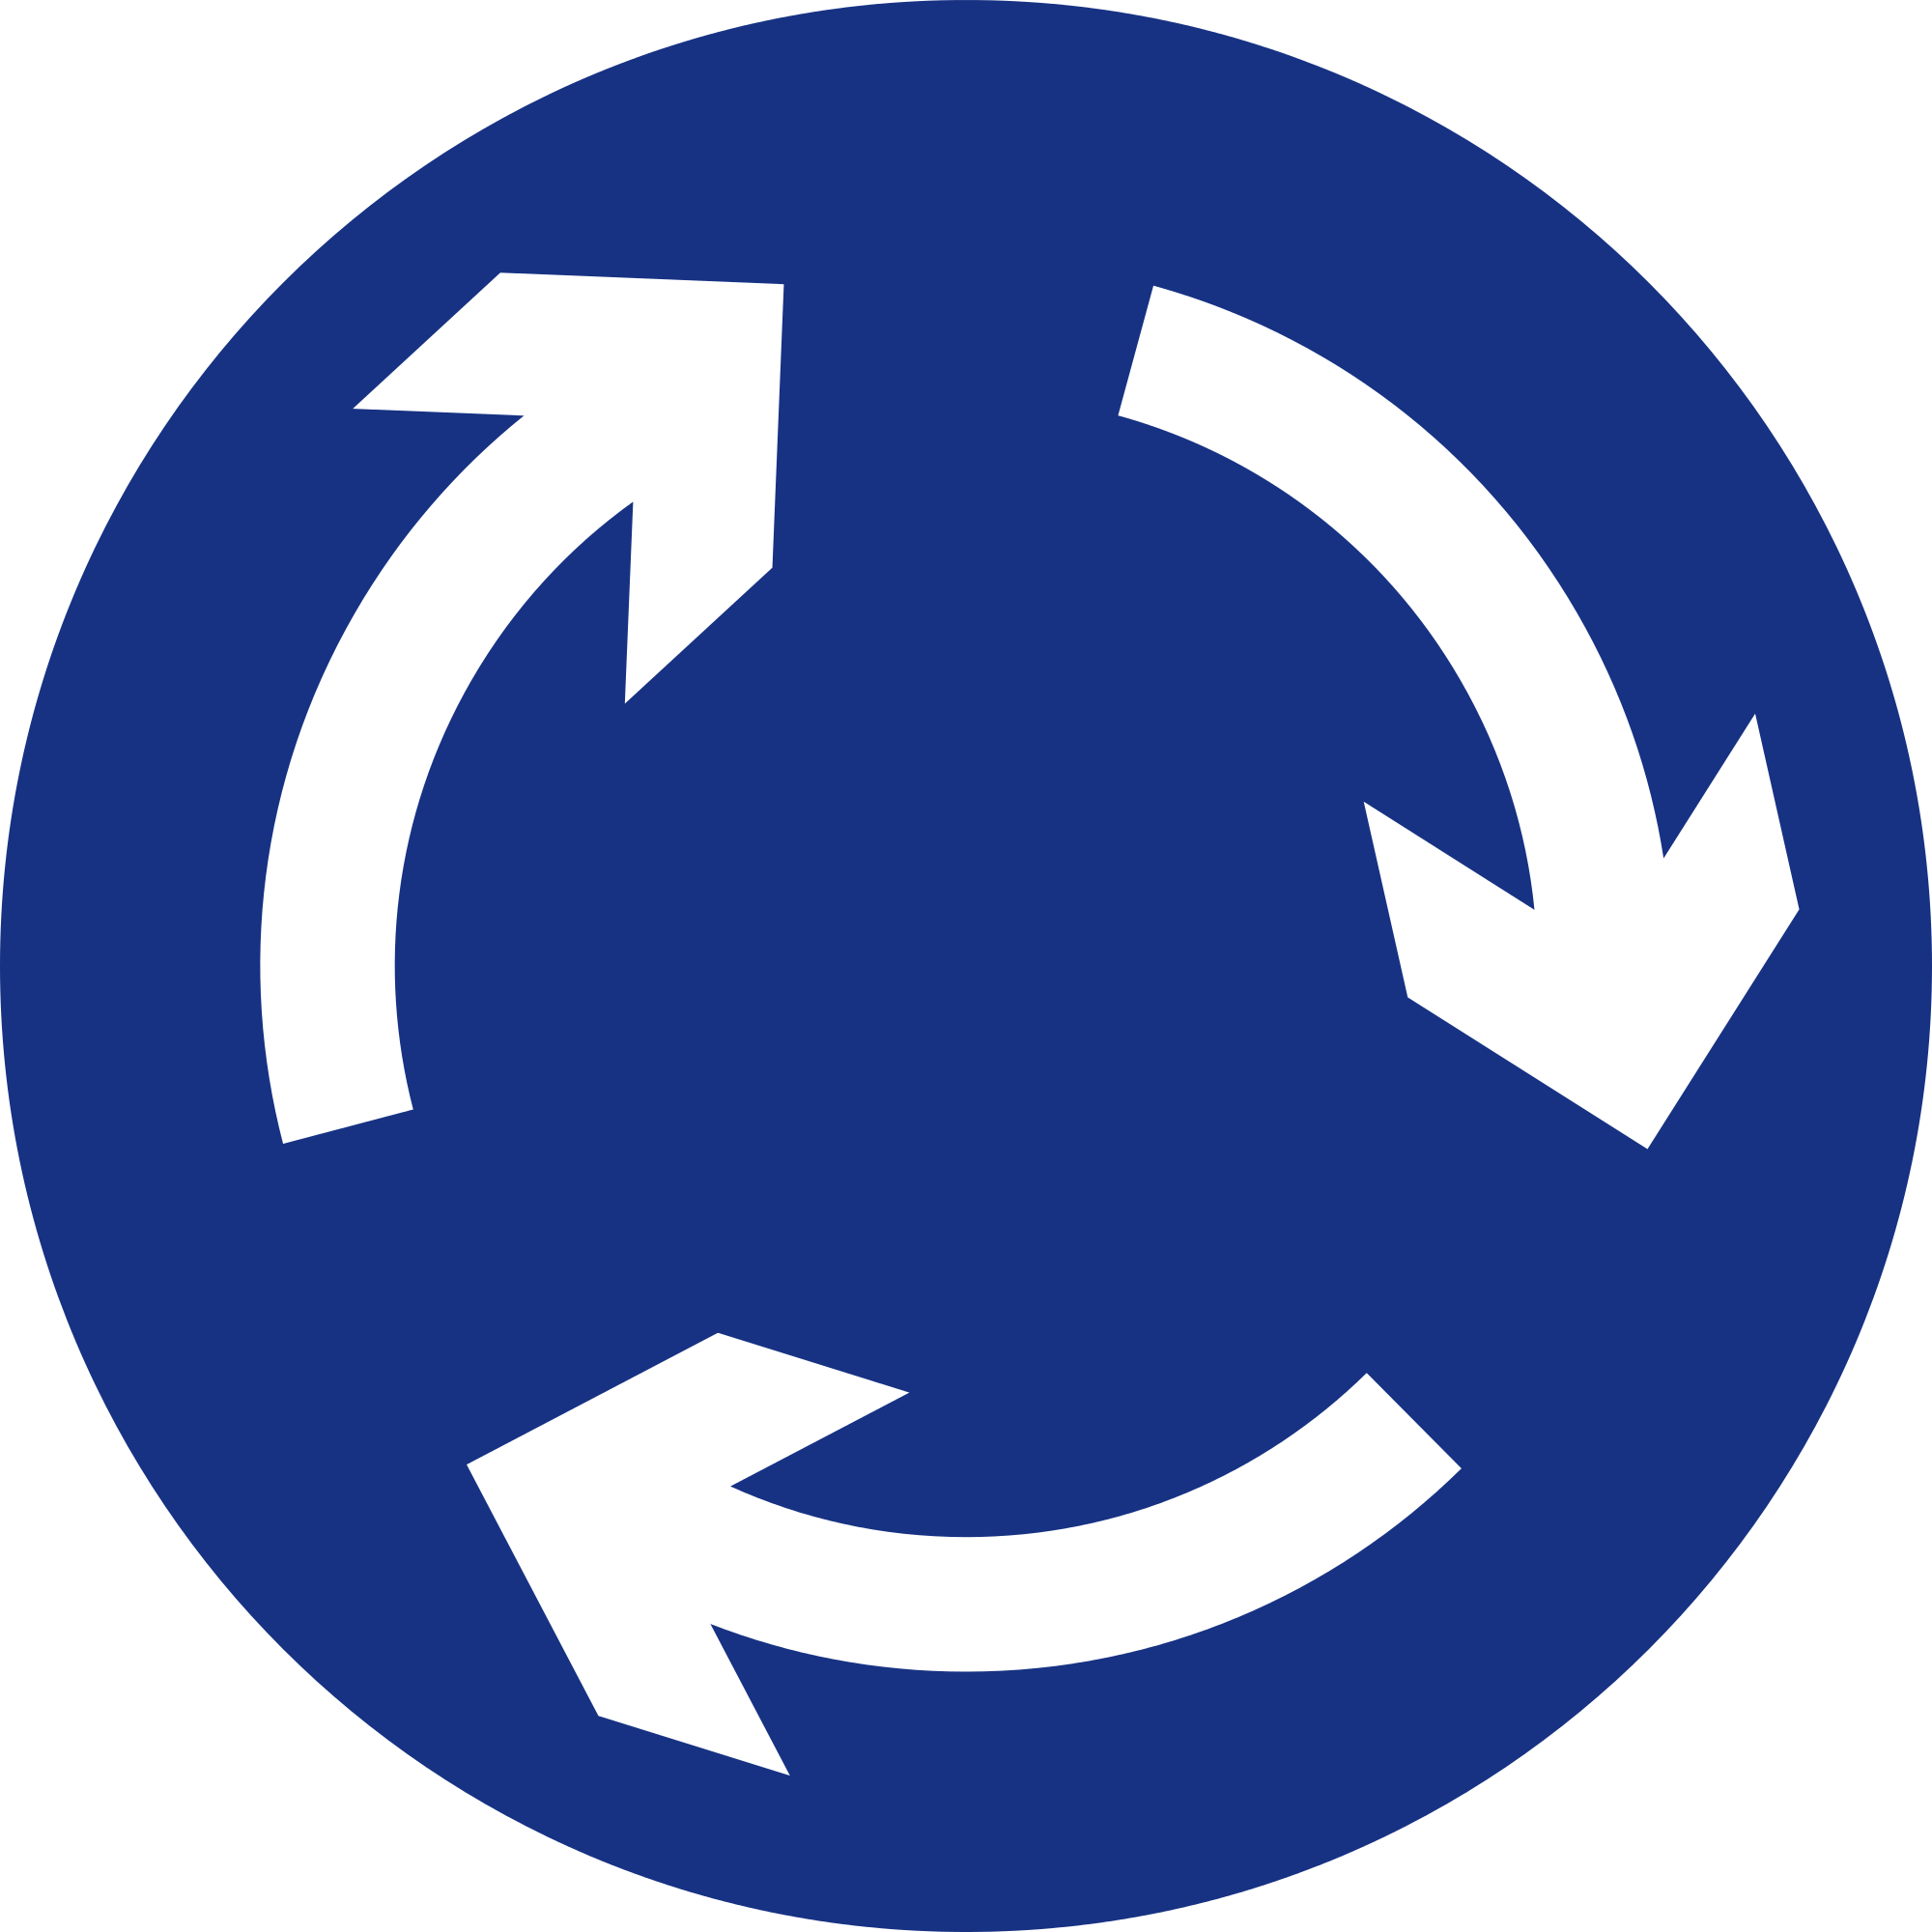 File:Mauritius Road Signs - Mandatory Sign - Compulsory Round-about ...